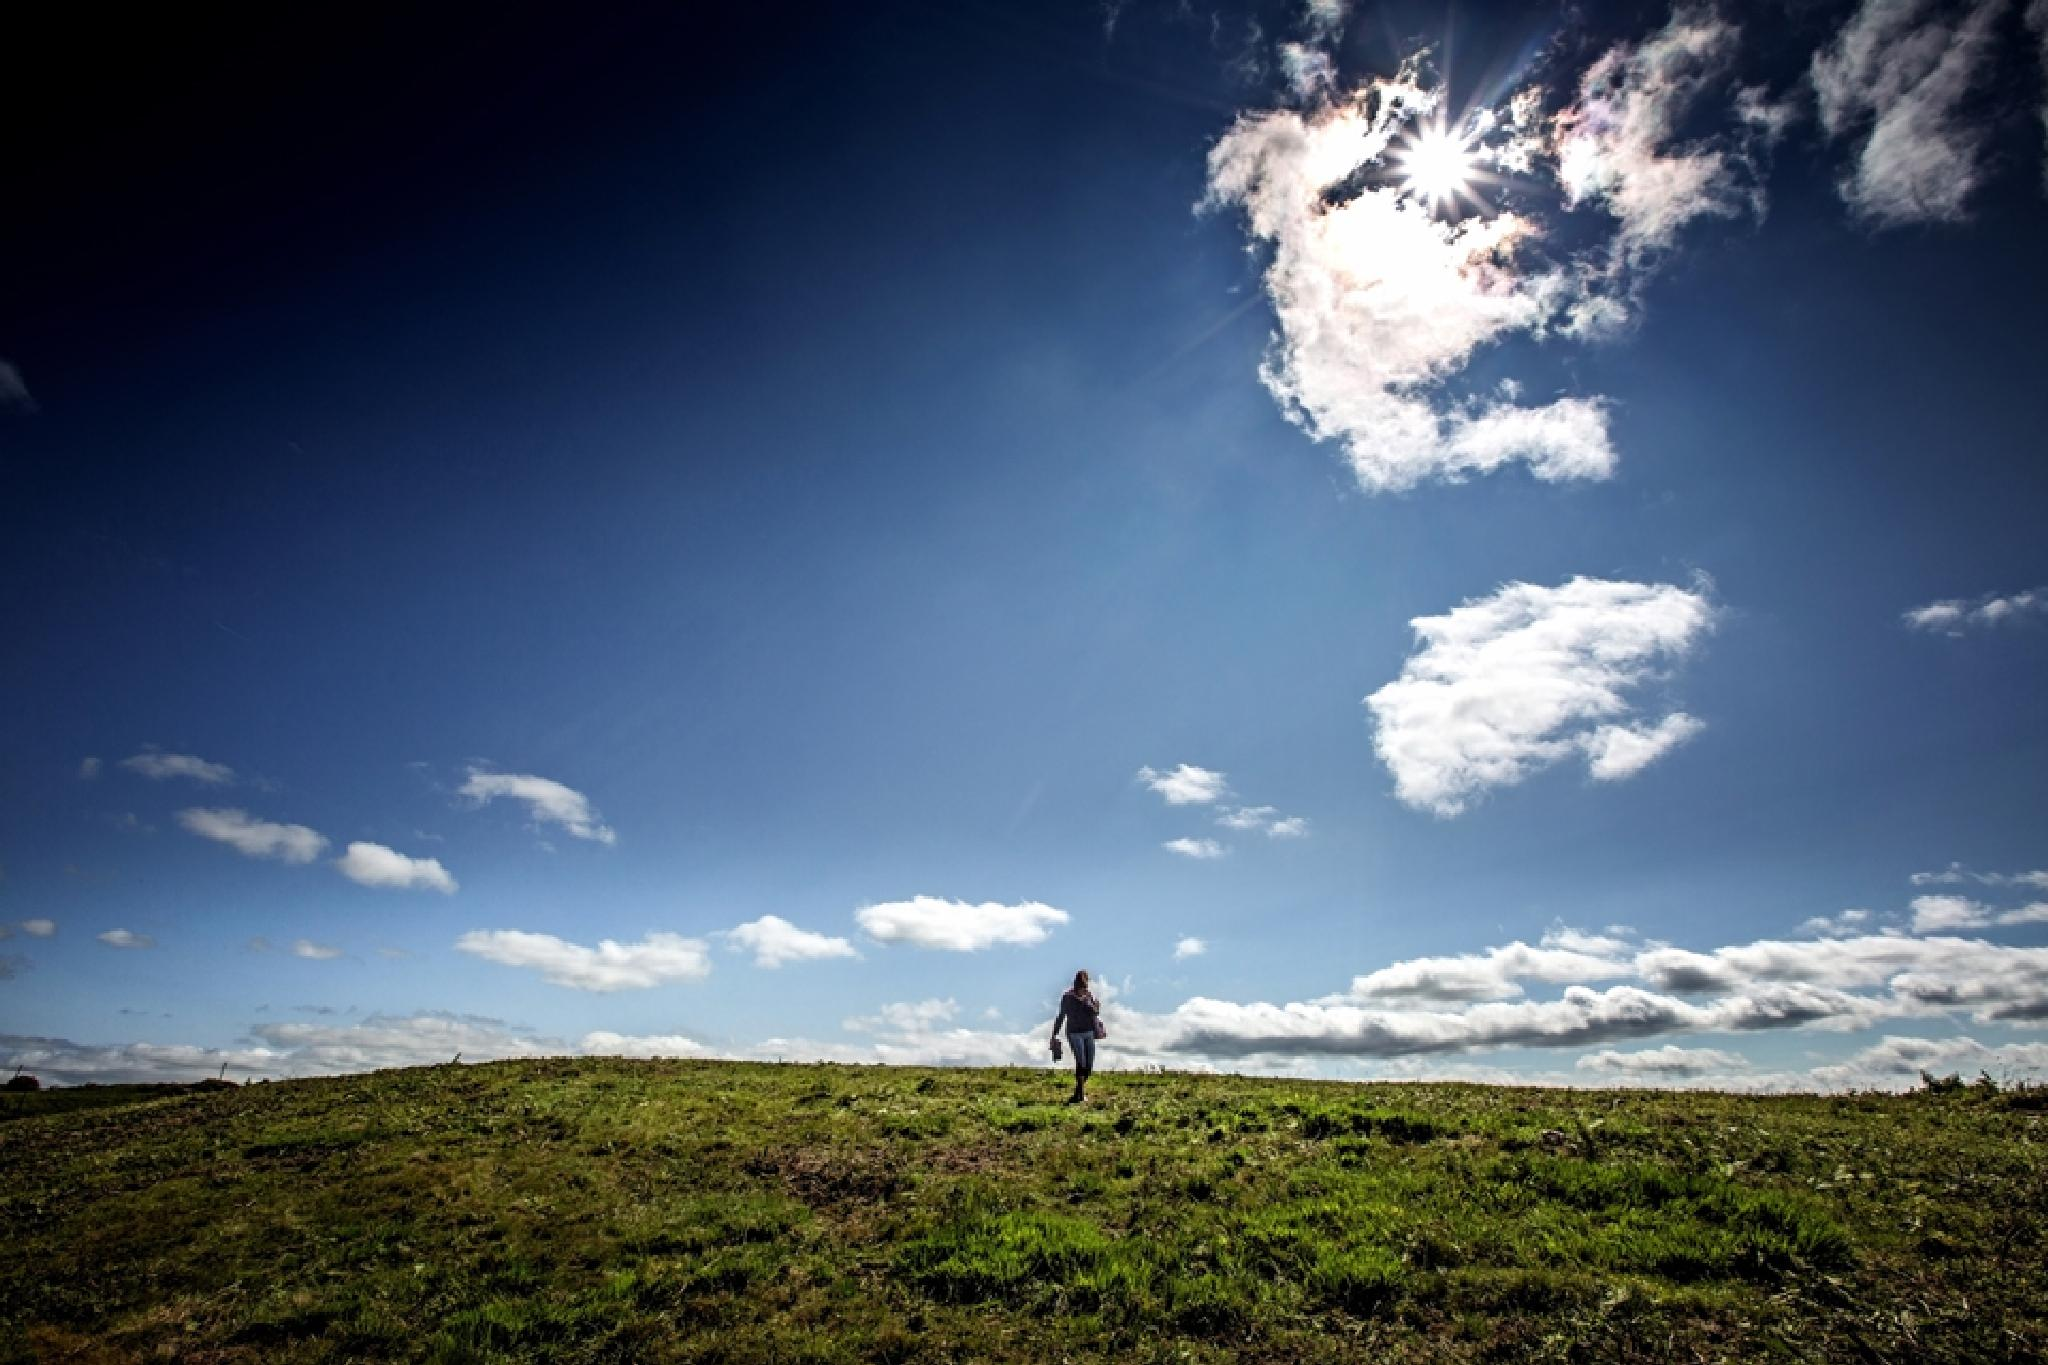 Alone on a hill by Gary Martin